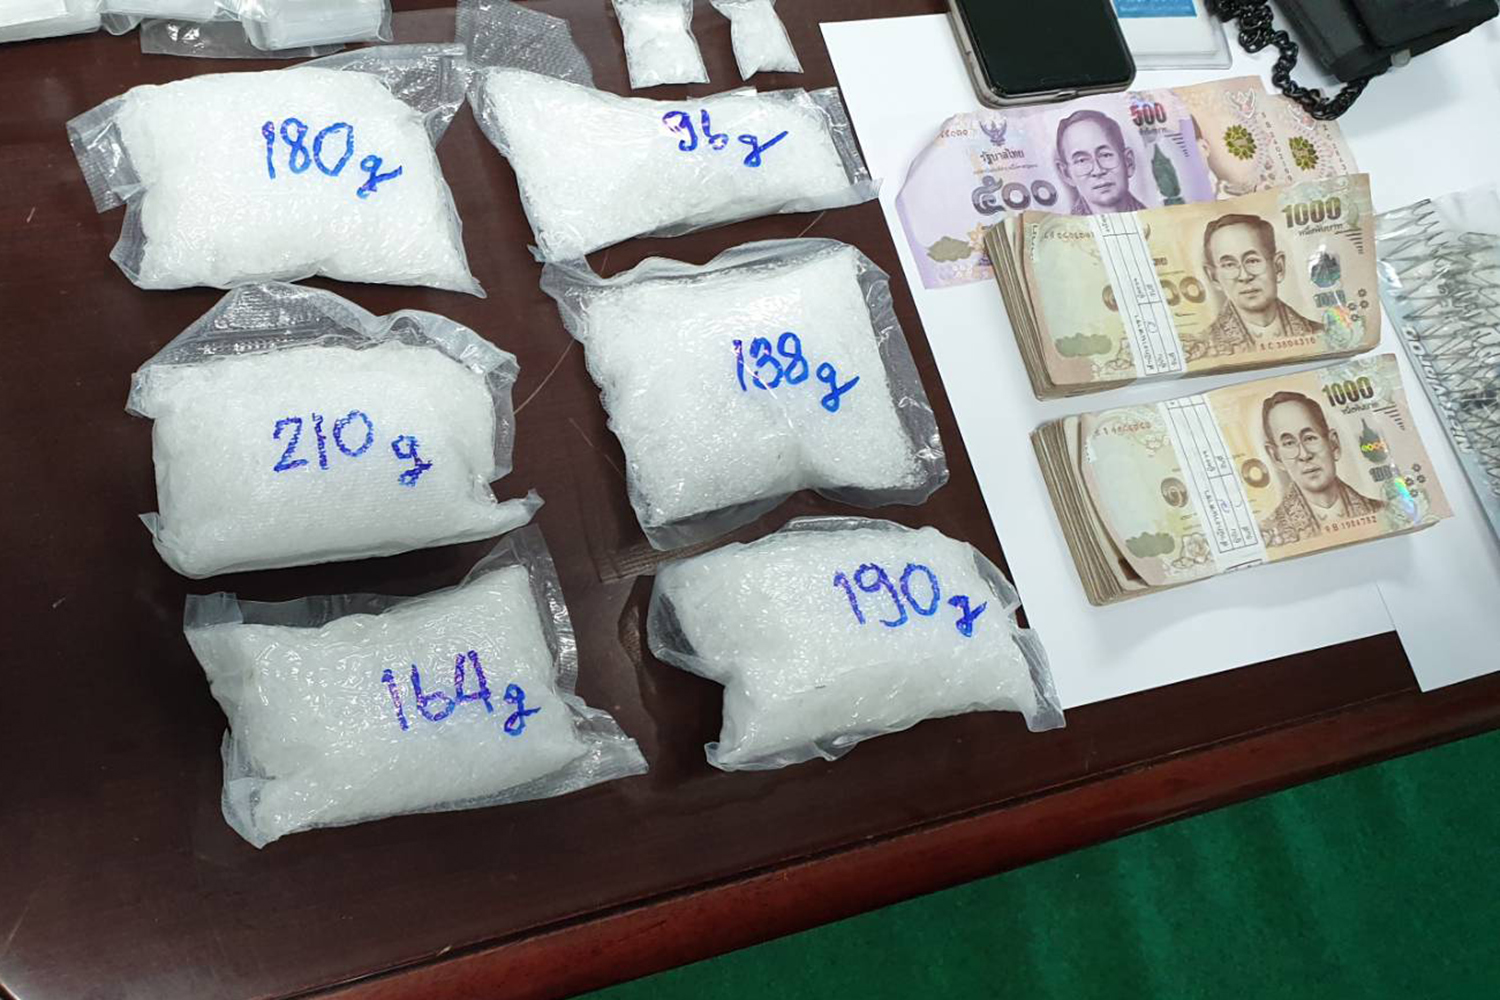 Police display crystal methamphetamine and cash seized from US citizen Bart Helmus and his Thai wife, Sirinapha Wisetrit, on Saturday in Pattaya. (Photo by Chaiyot Pupattanapong)